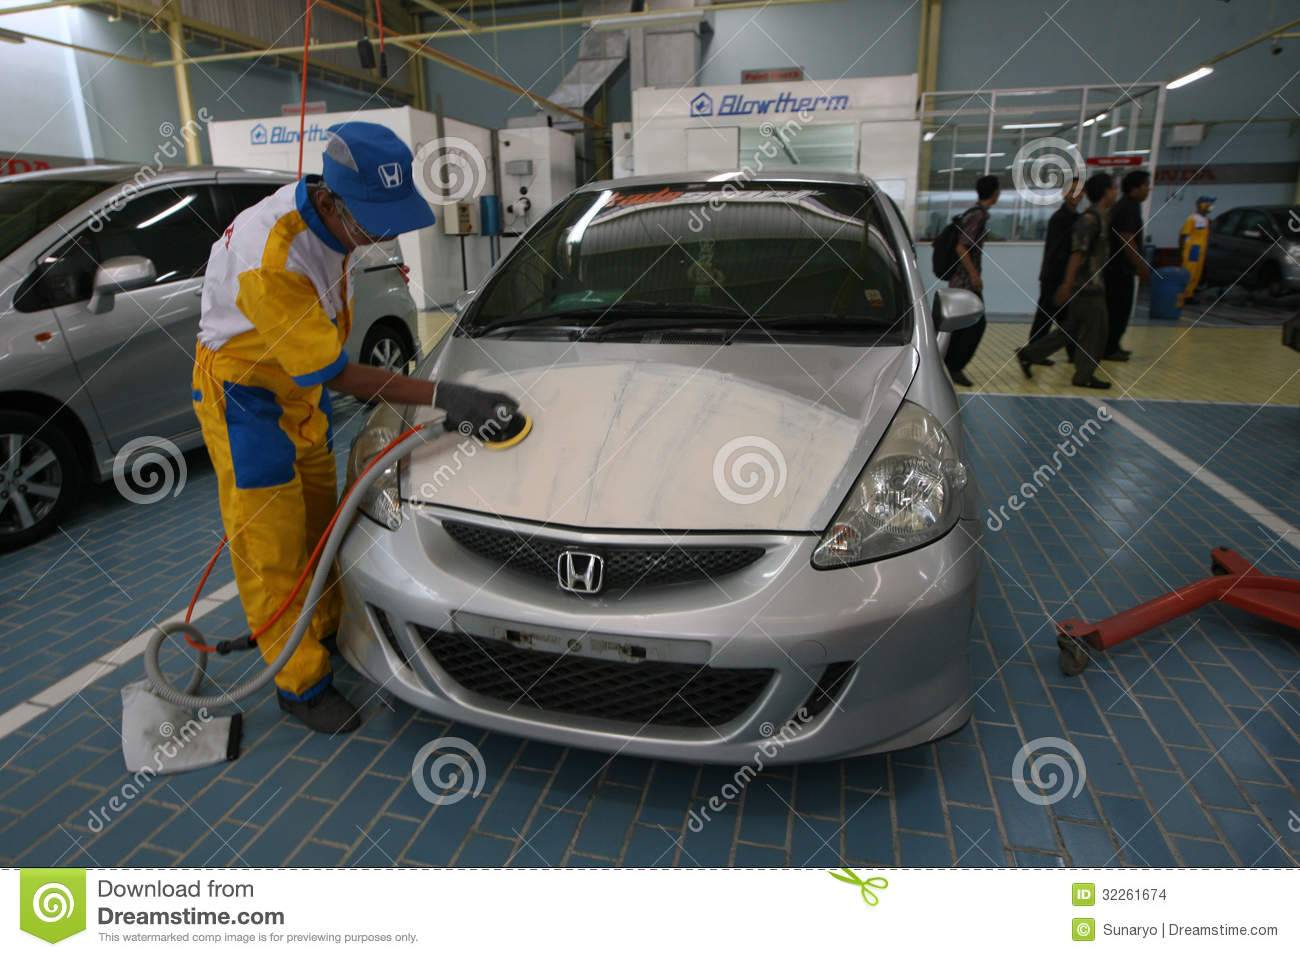 body image workshop Body repair editorial stock image. Image of headlamp - 32261674